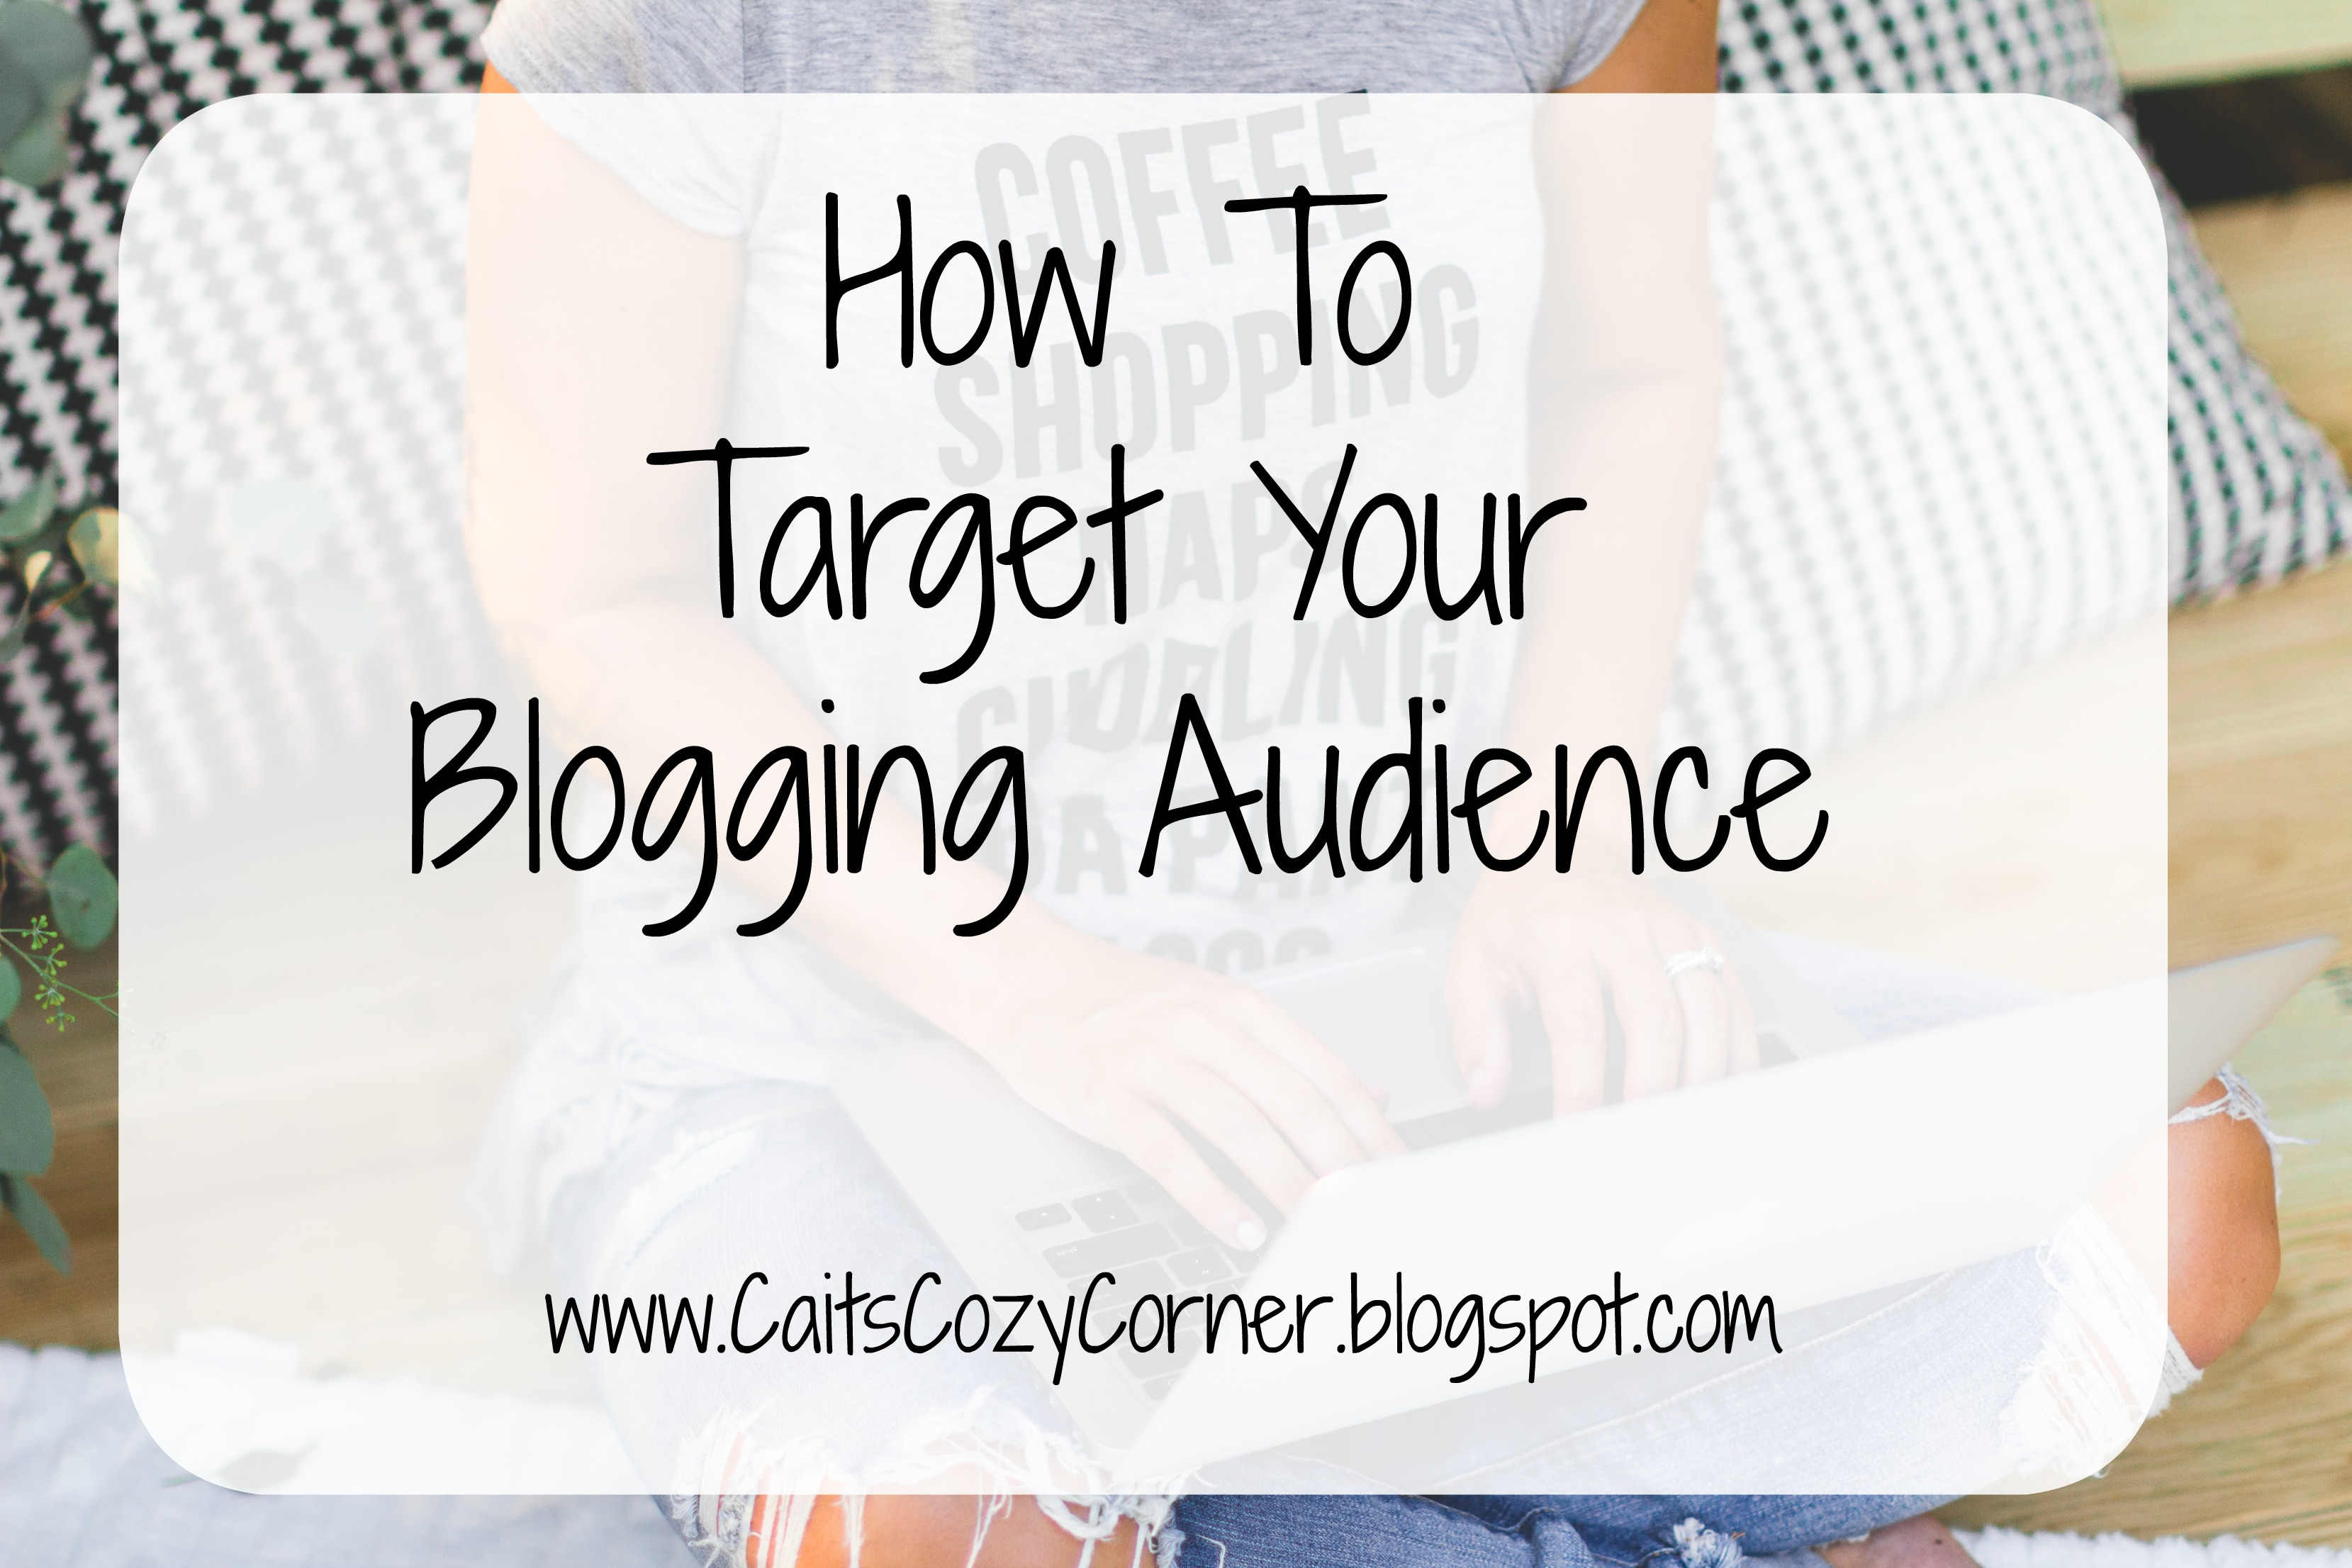 How to Target Your Blogging Audience